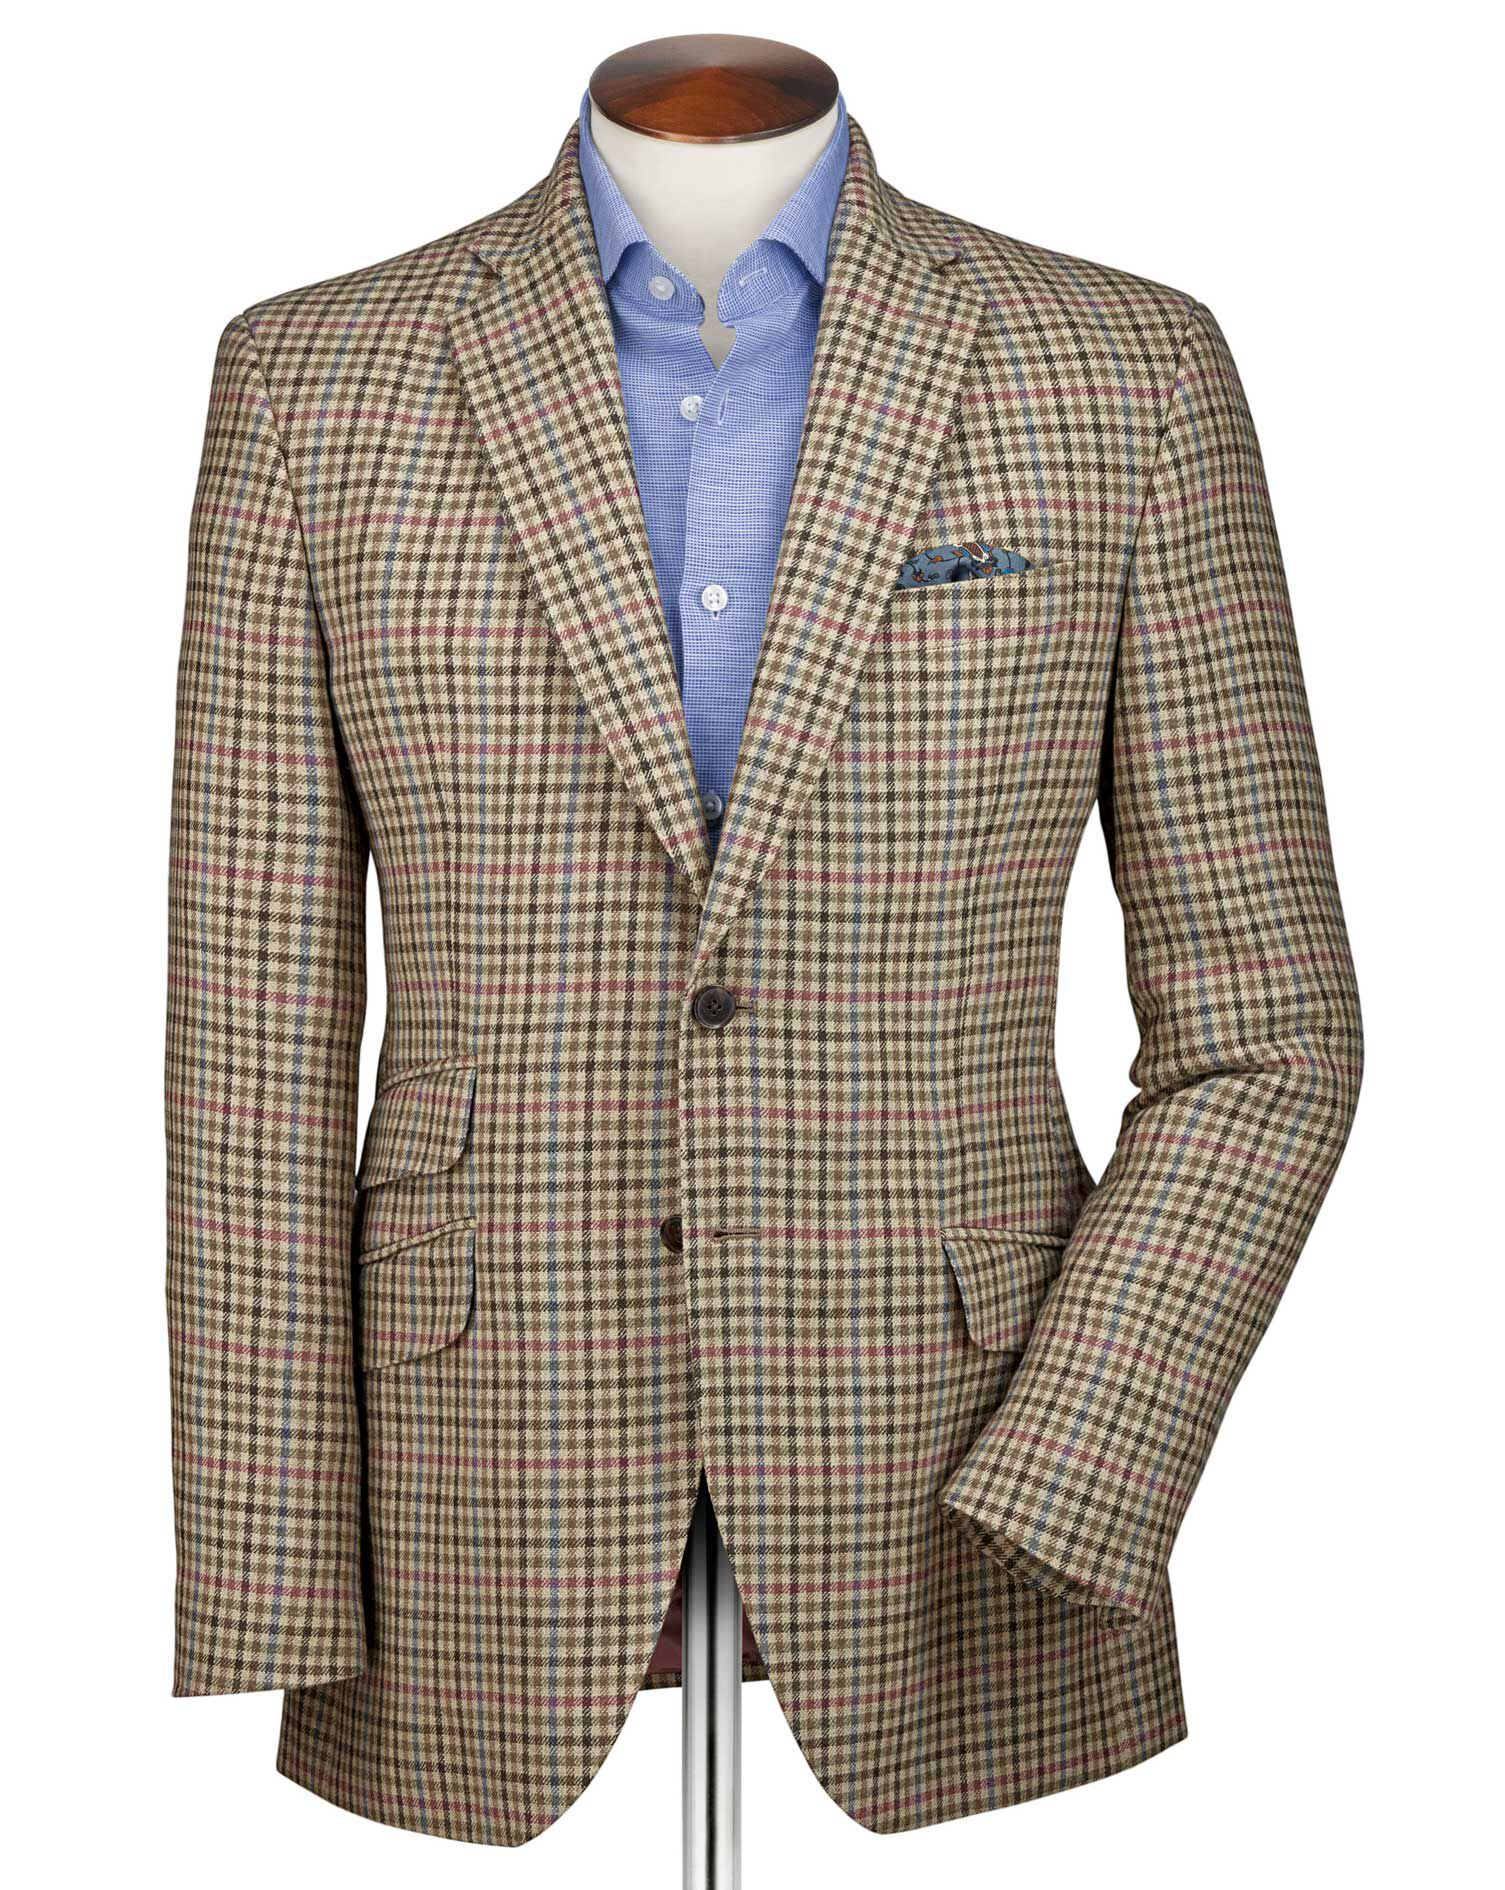 Classic Fit Beige Checkered Luxury Border Tweed Wool Jacket Size 46 by Charles Tyrwhitt